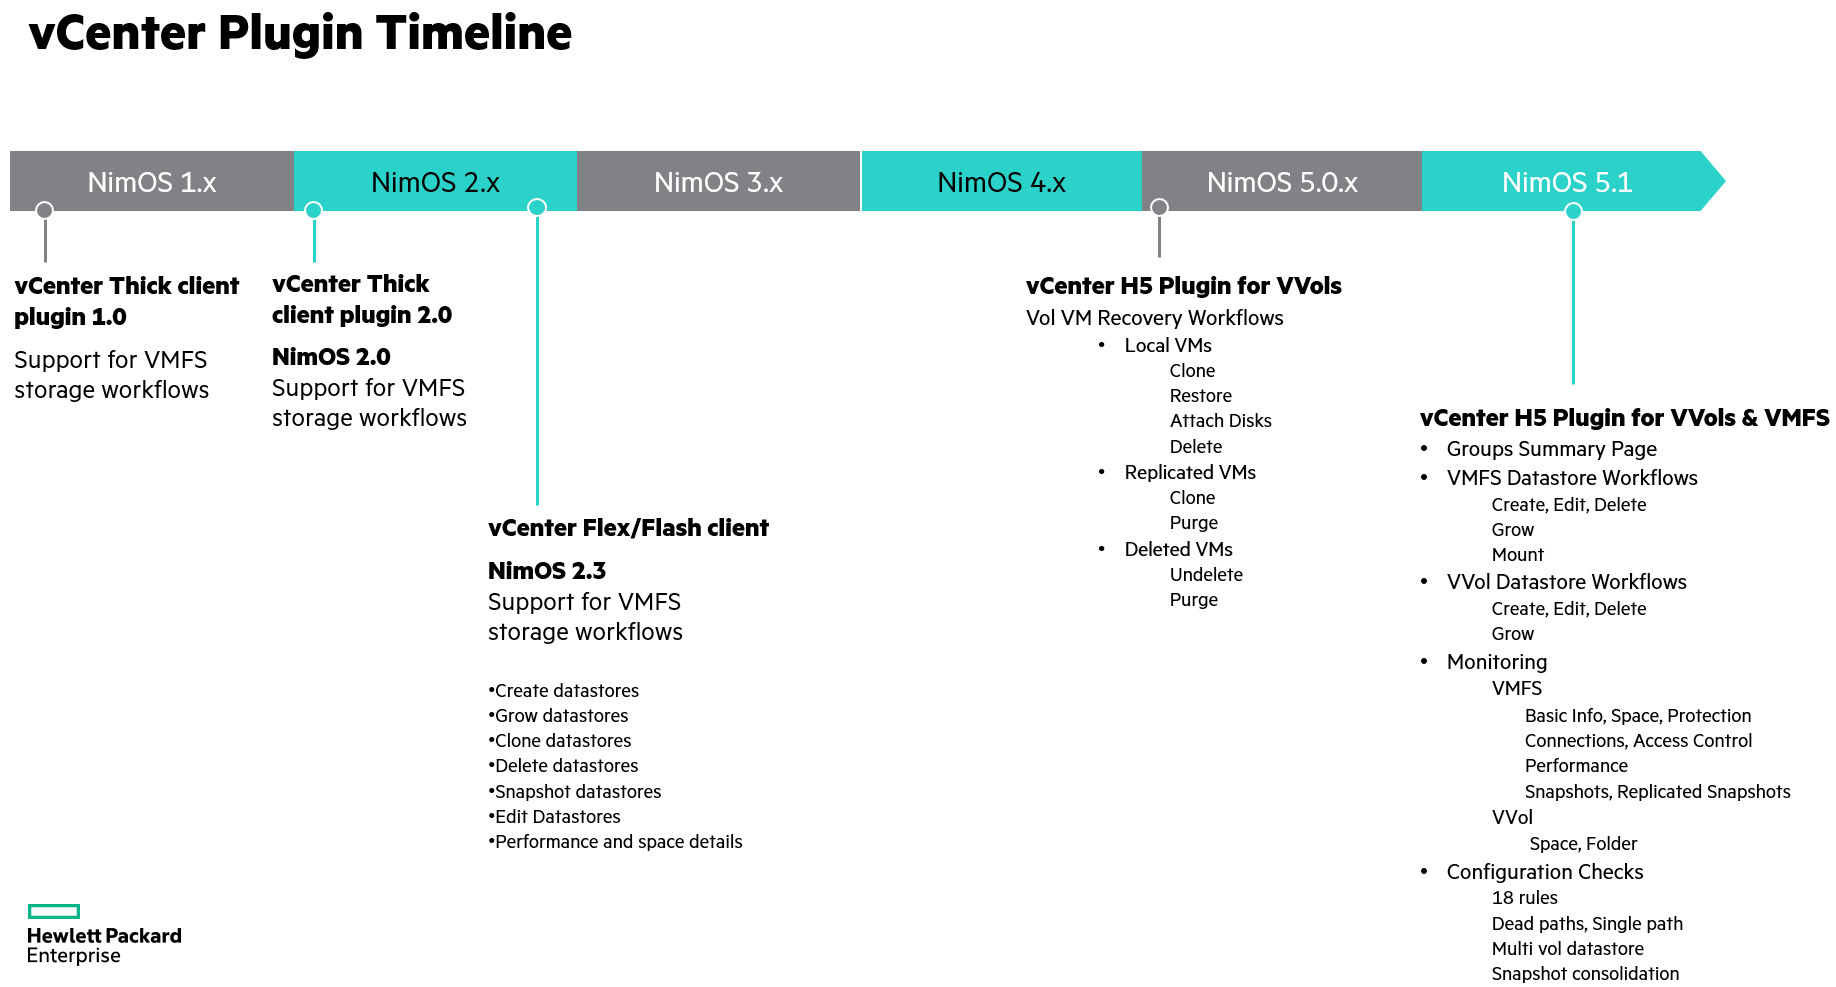 3 Reasons to switch to HPE Nimble Storage H5 vCenter plugin